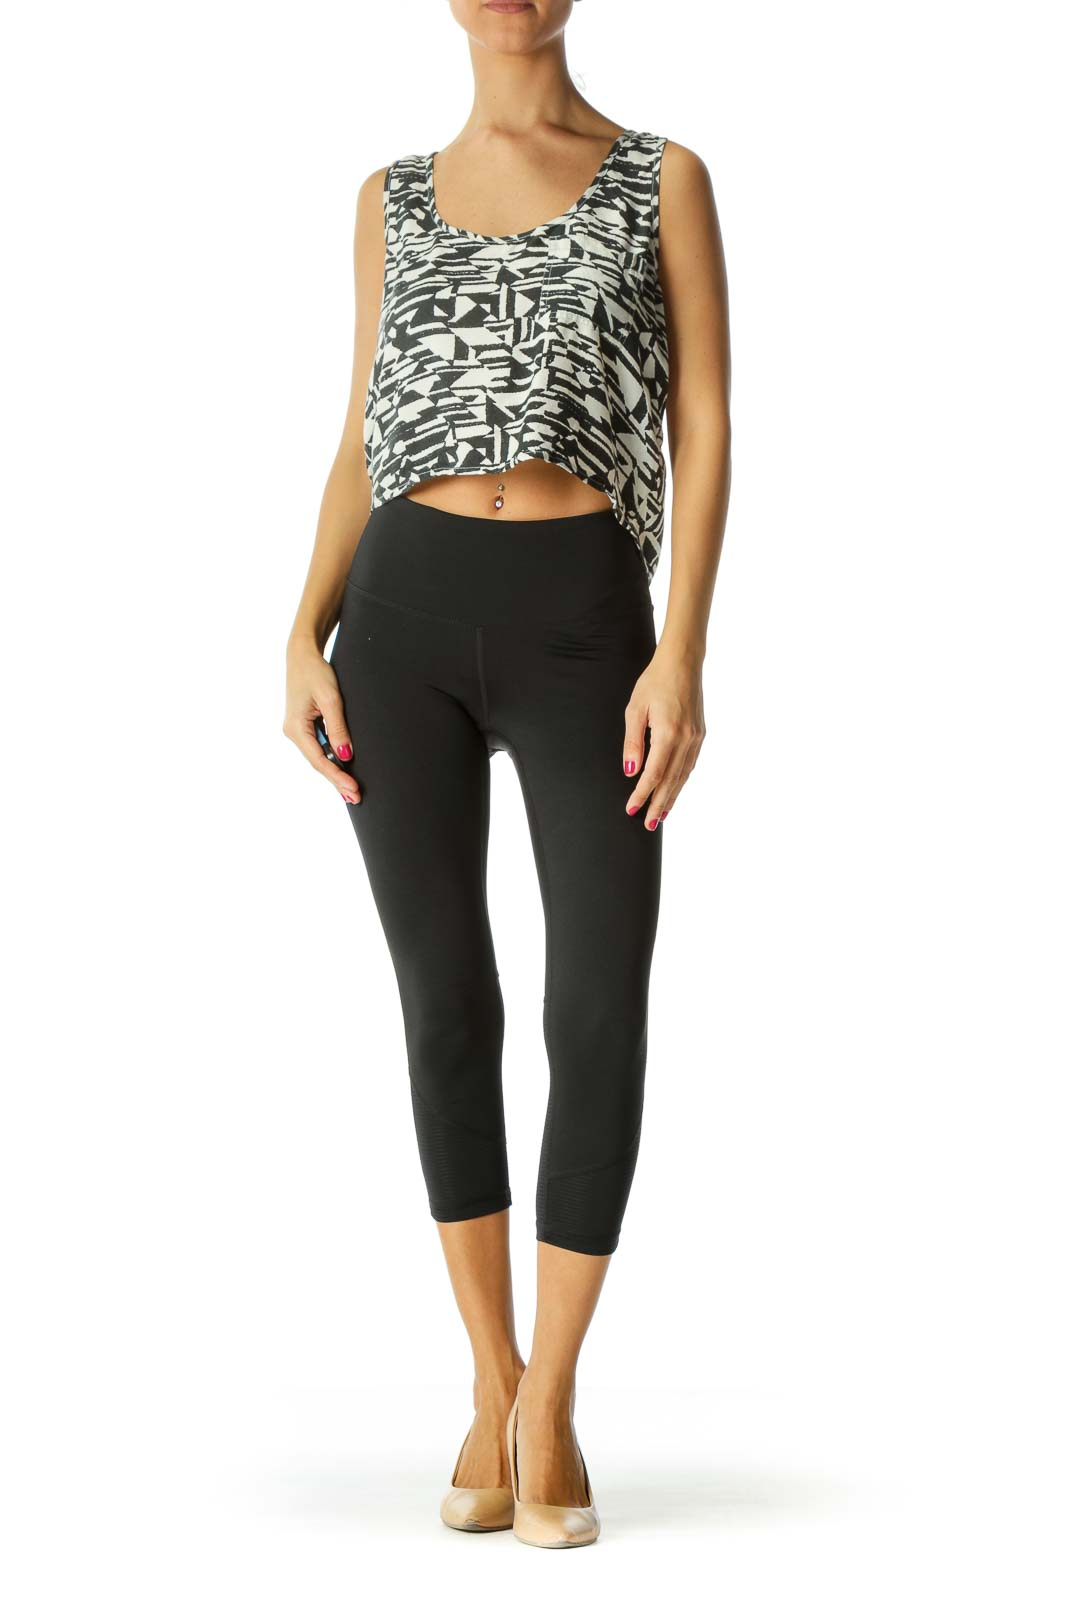 Black Patterned Crop Tank Top